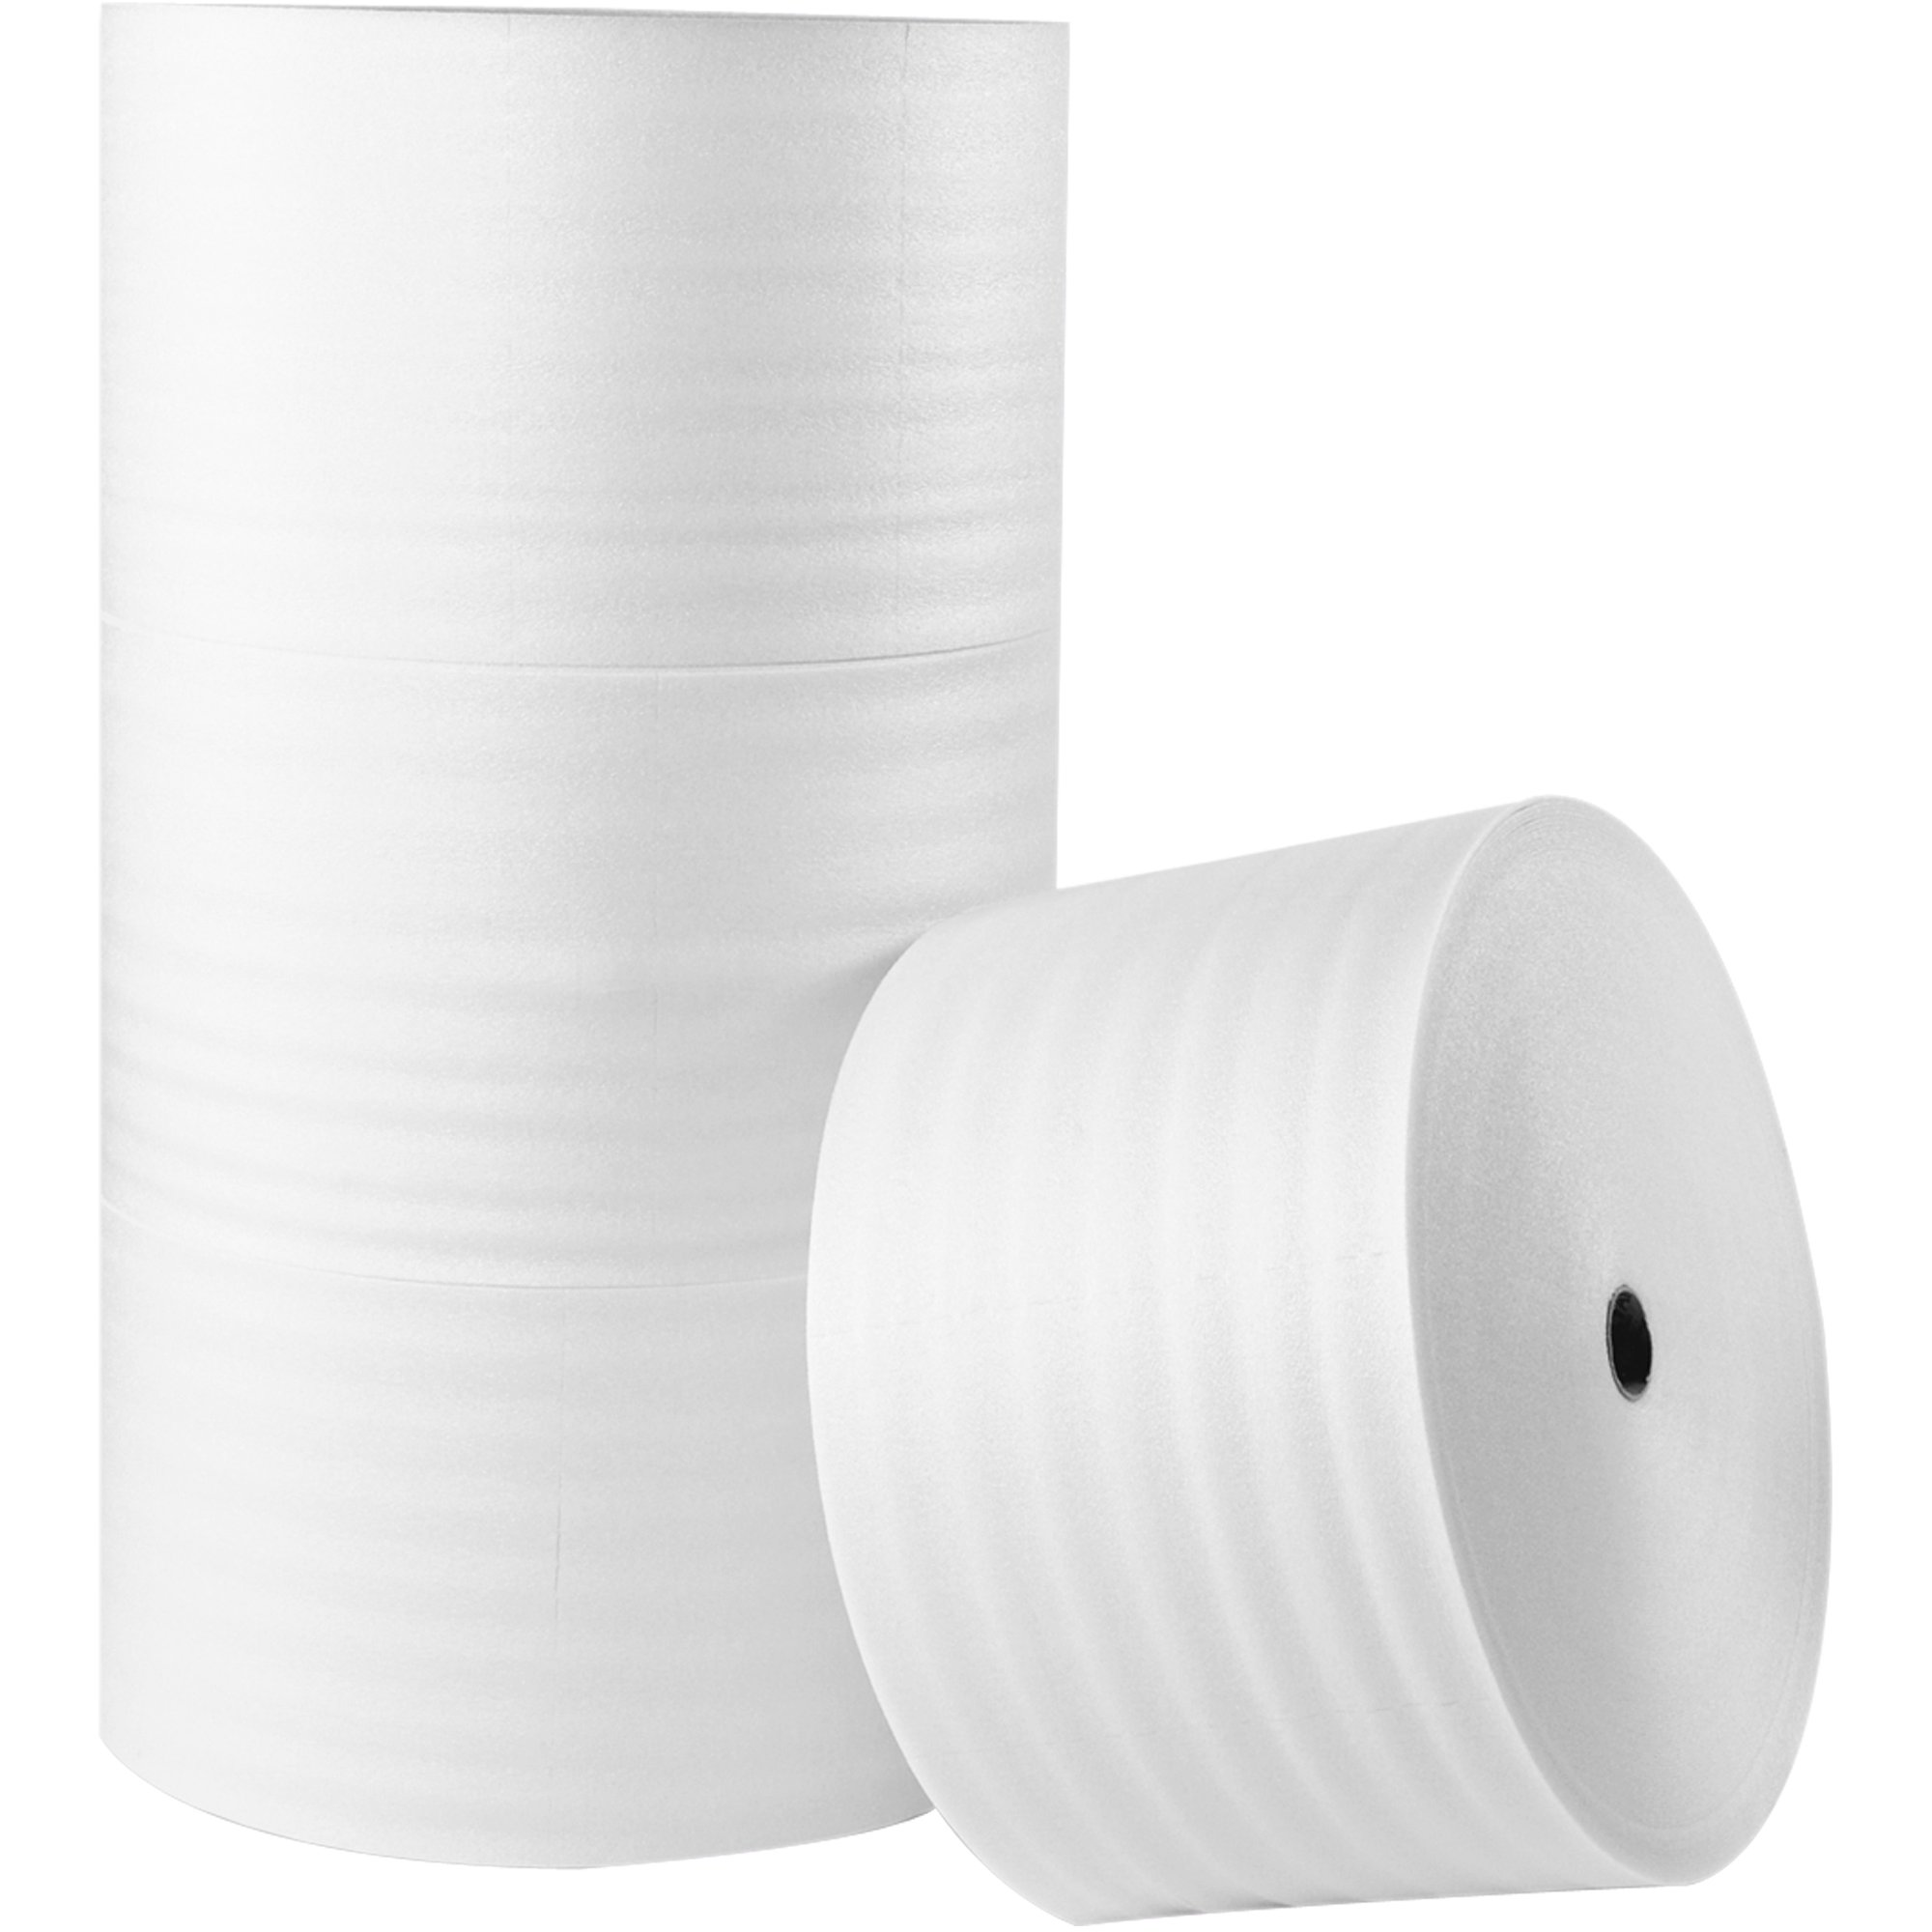 Ship Now Supply SNFWUPS116S24 Upsable Air Foam Rolls, 1/16'' x 24'' x 900', 24'' Width, 0.063'' Height, White by Ship Now Supply